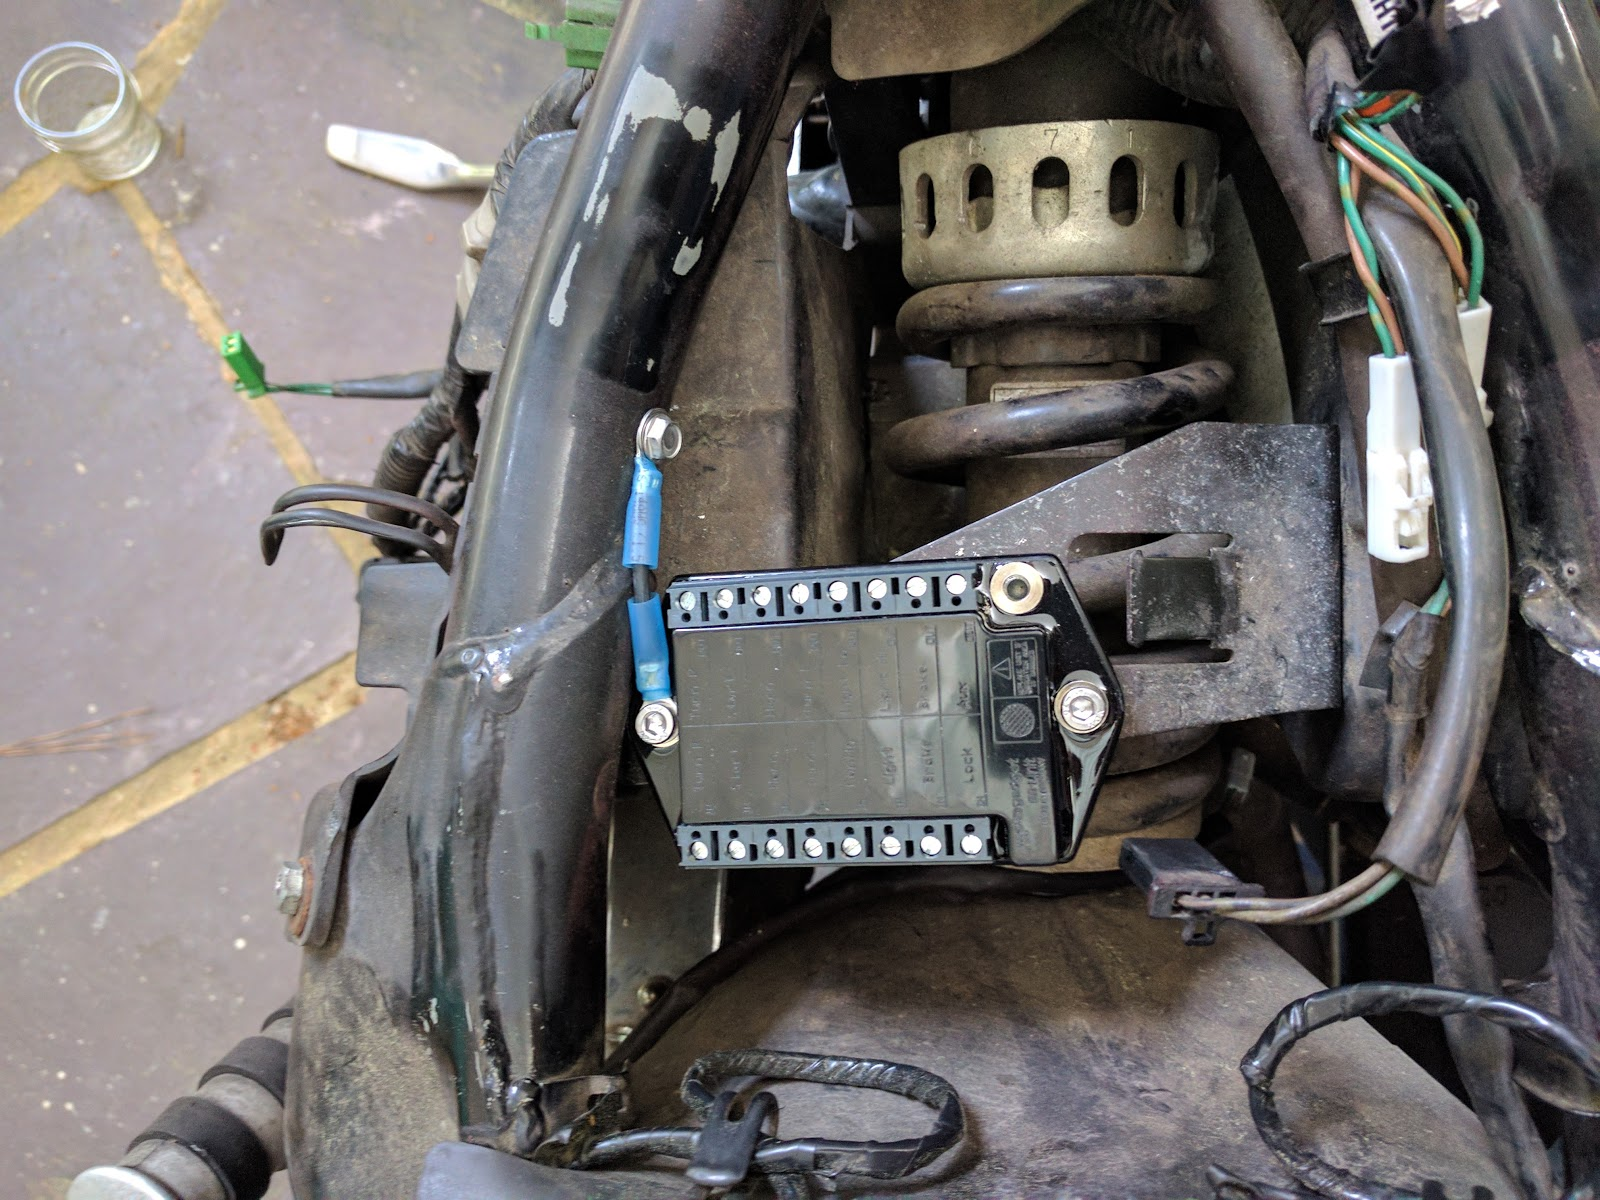 Breaker Wiring Diagram For Hood On Furthermore 2001 Honda Civic Fuse